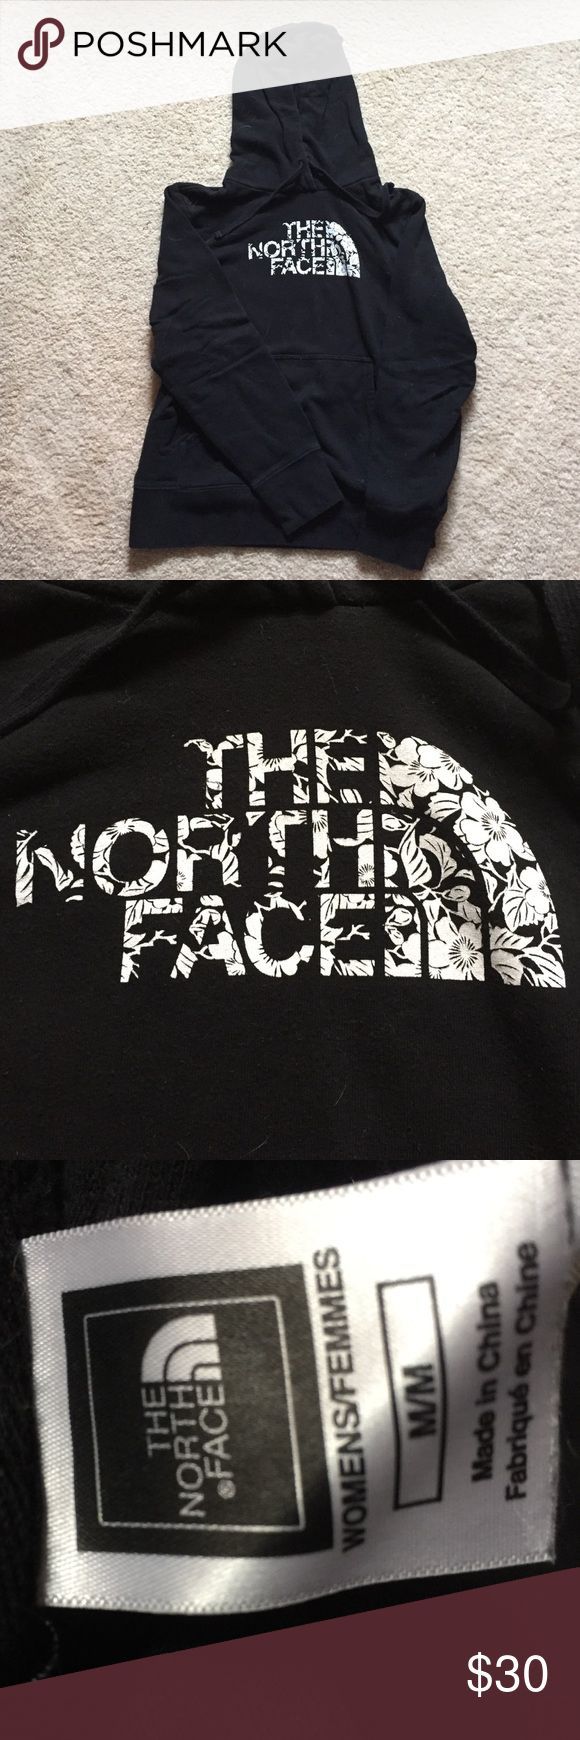 The North Face black and white pullover hoodie Hardly worn at all. Logo is made up of flowers. The North Face Tops Sweatshirts & Hoodies